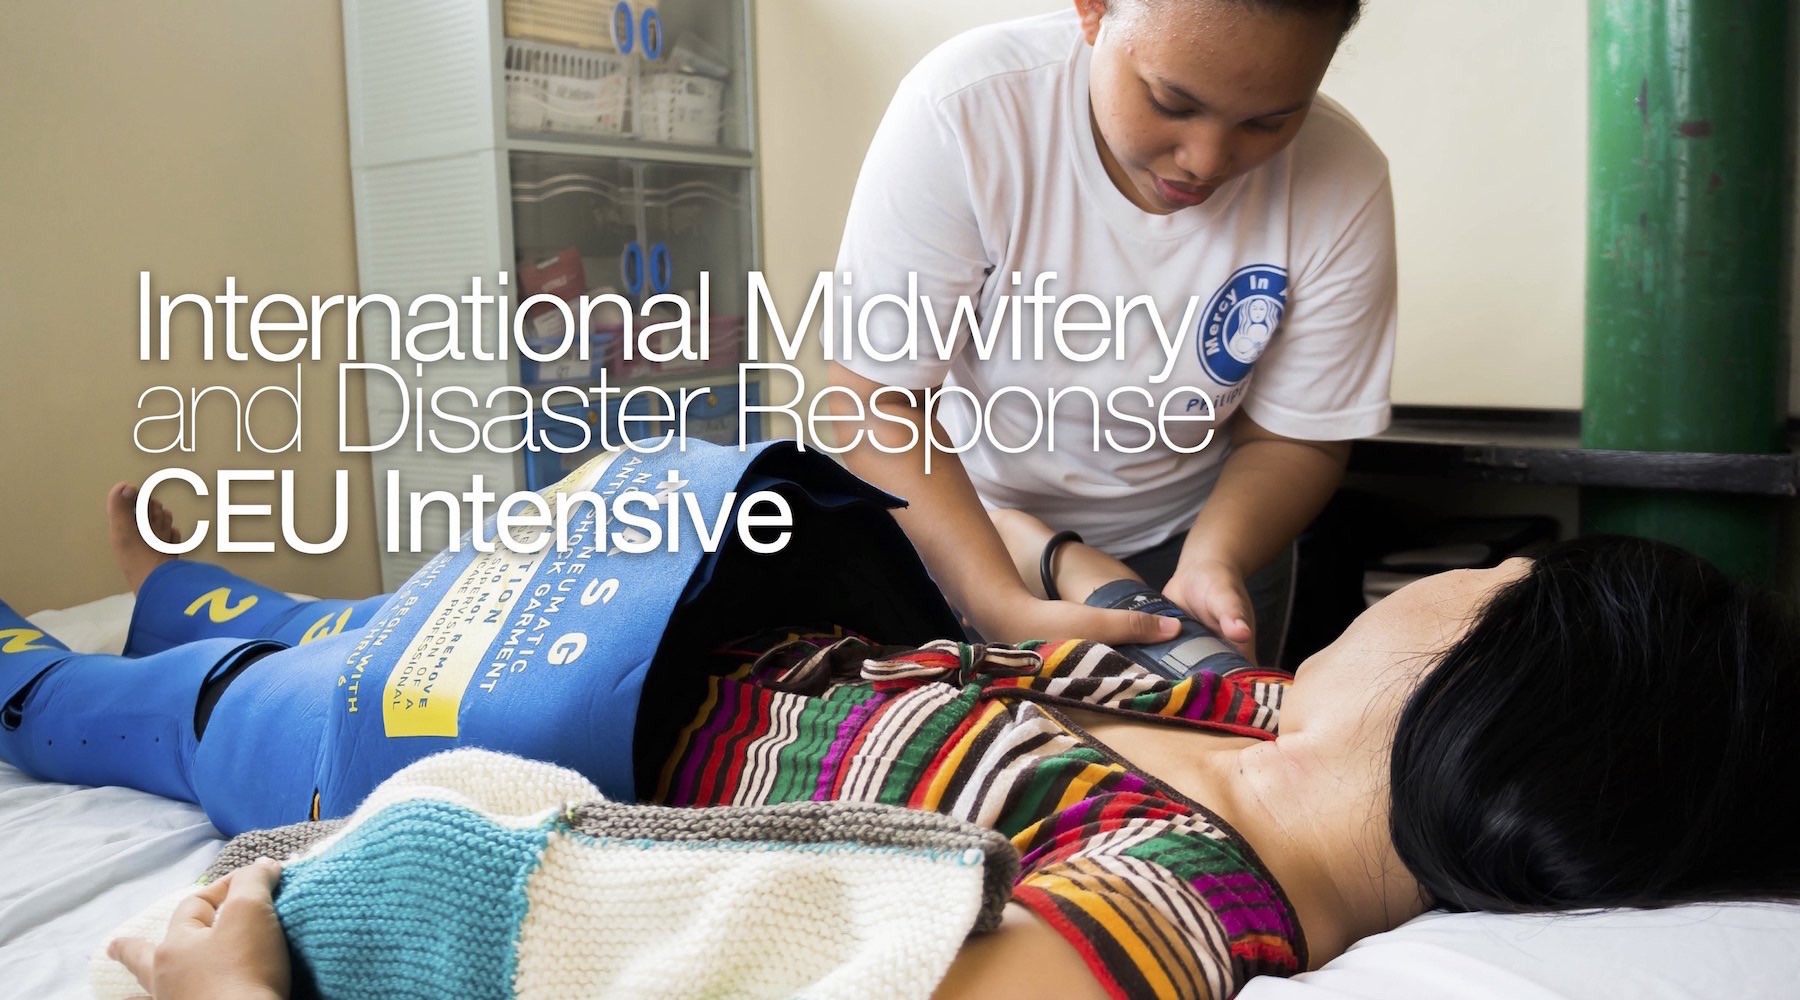 International Midwifery and Disaster Response cropped.jpeg